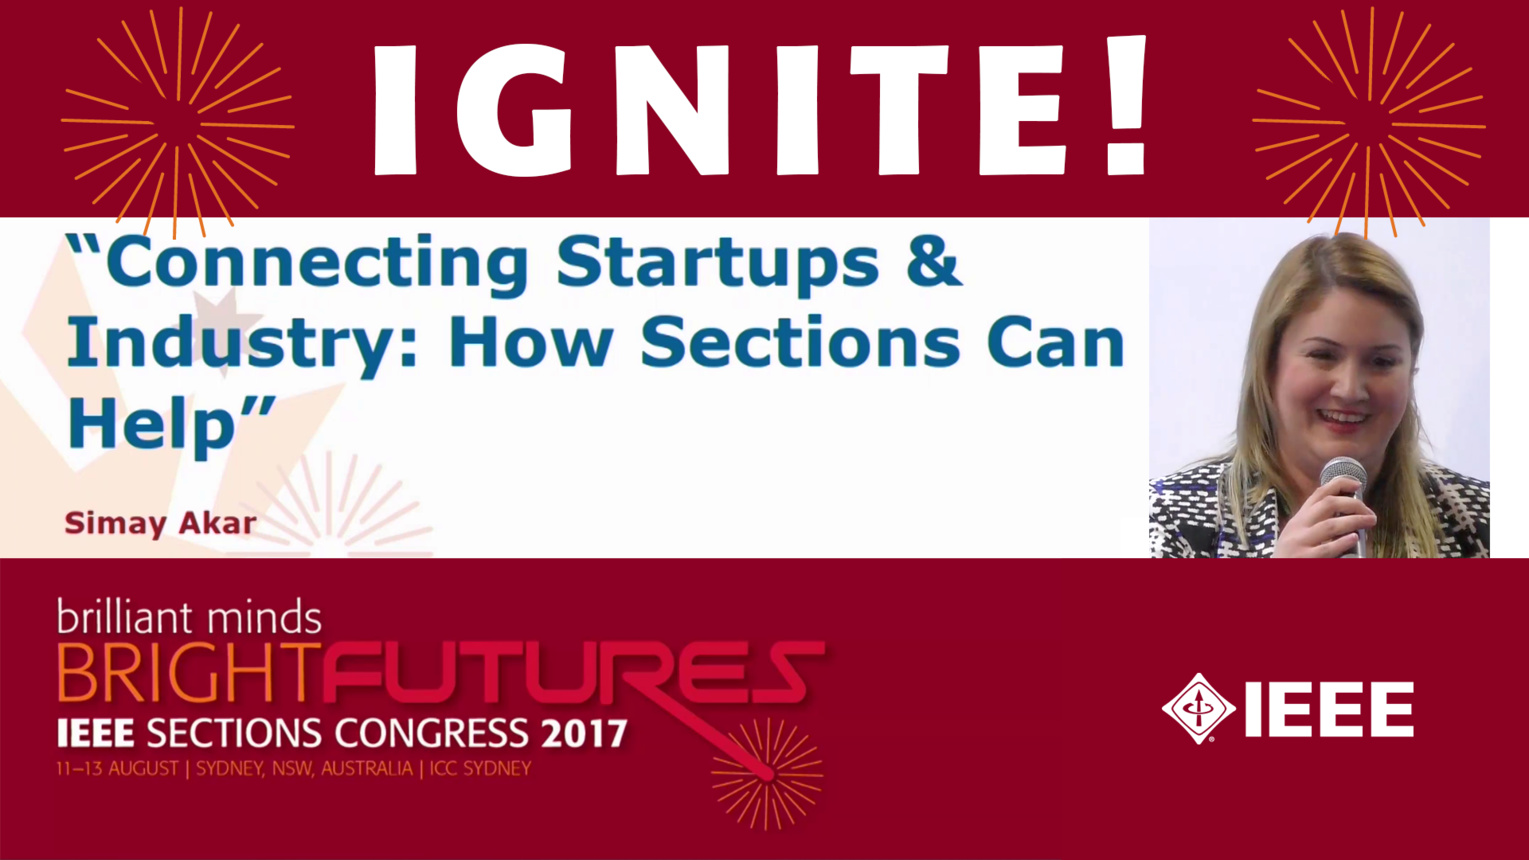 Connecting Startups and Industry: How Sections Can Help - Simay Akar - Ignite: Sections Congress 2017